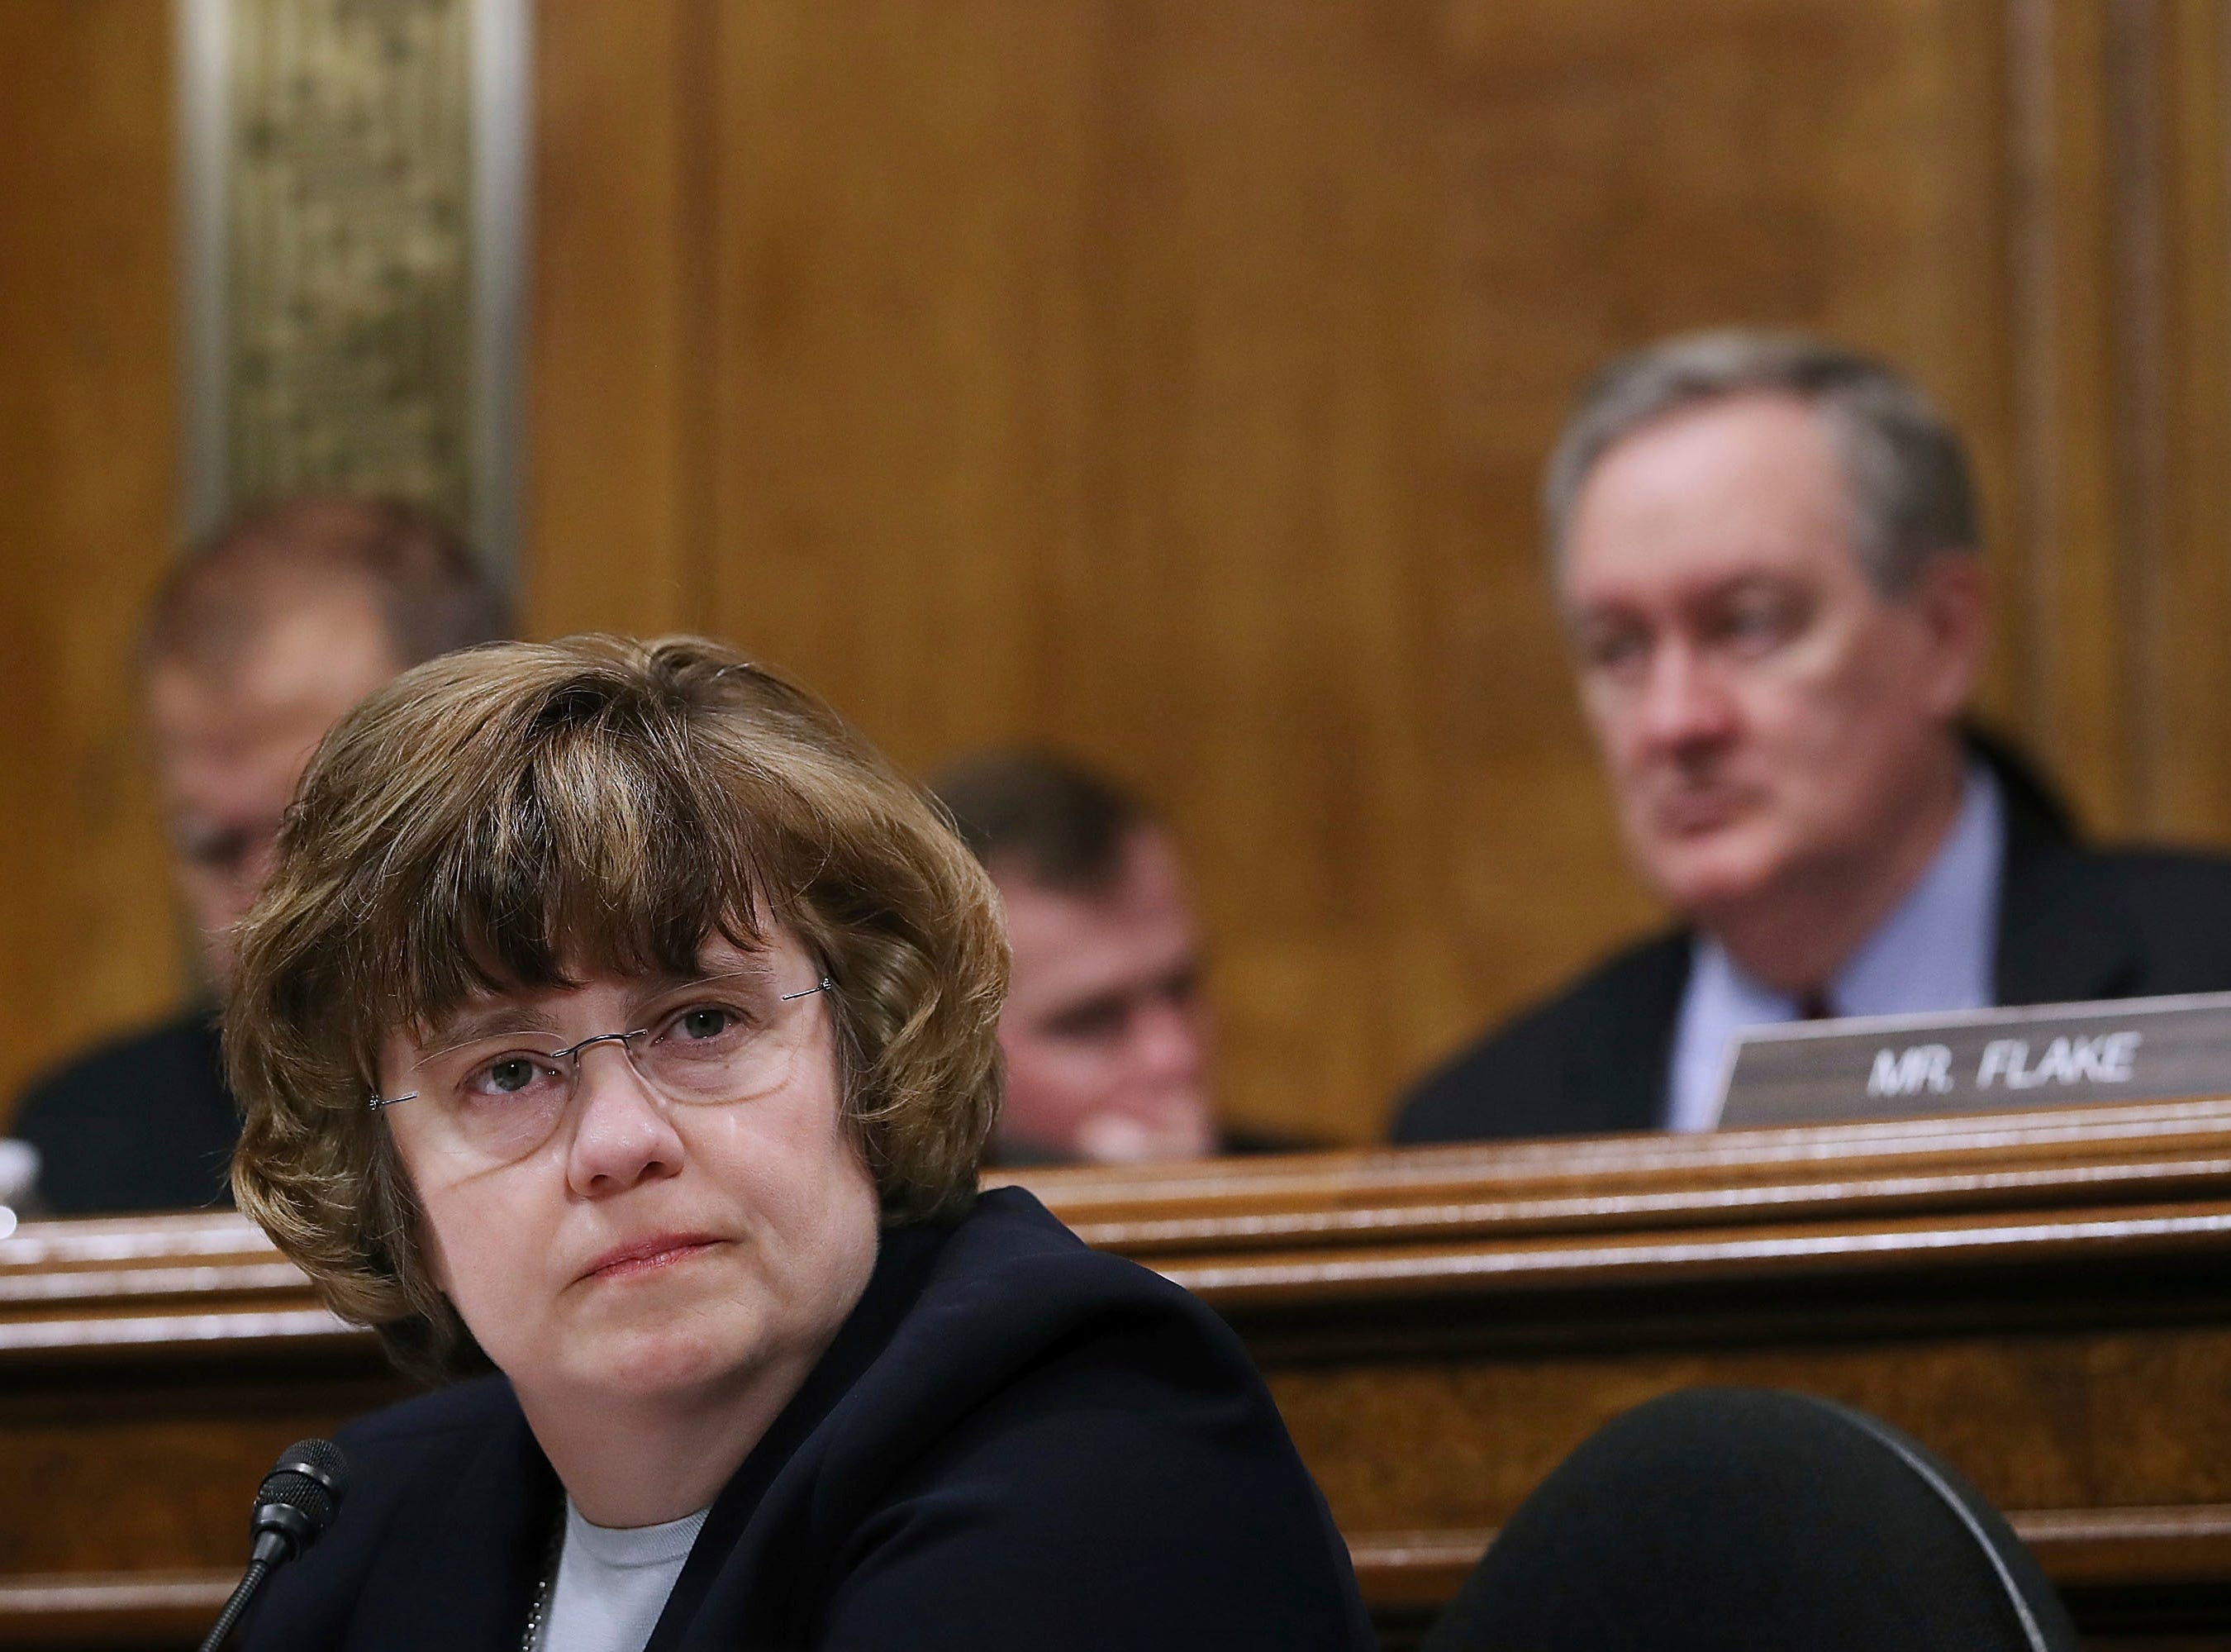 Arizona prosecutor Rachel Mitchell questions Christine Blasey Ford as she testifies before the Senate Judiciary Committee, Sept. 27, 2018 in Washington.